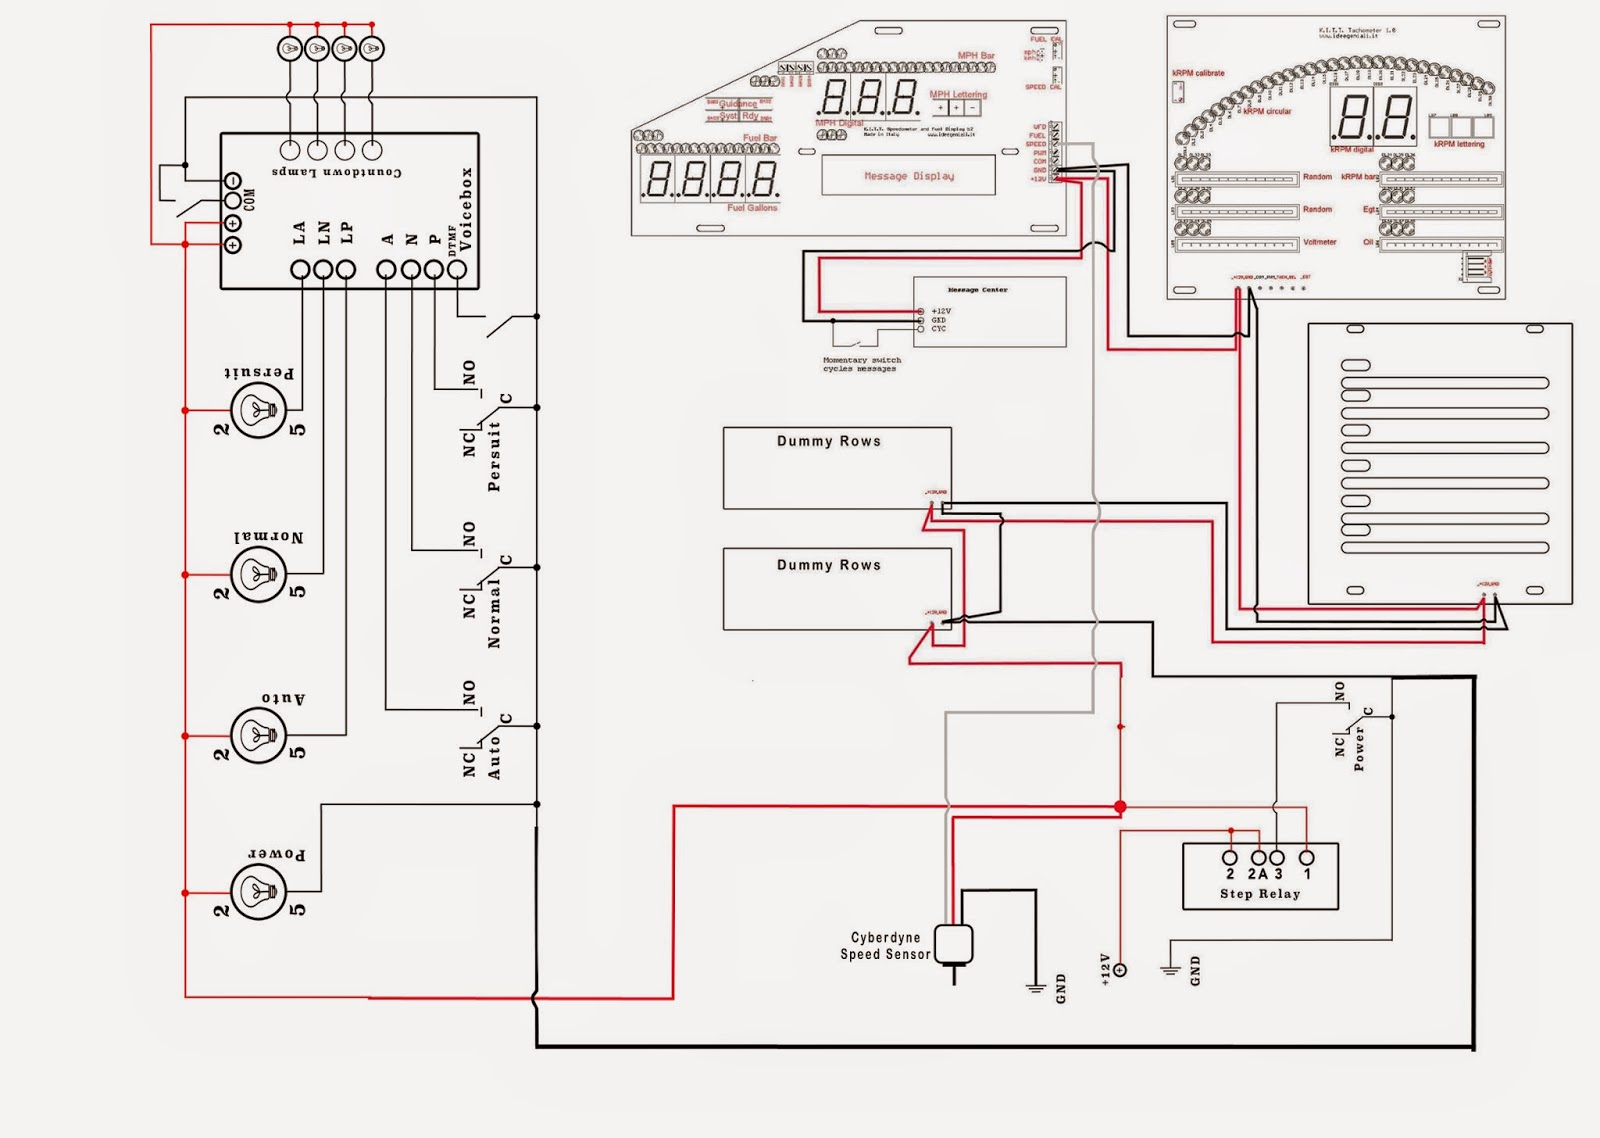 cole hersee wiring diagram cole hersee ignition switch wiring rh parsplus co Cole Hersee 48080 cole hersee starter solenoid wiring diagram